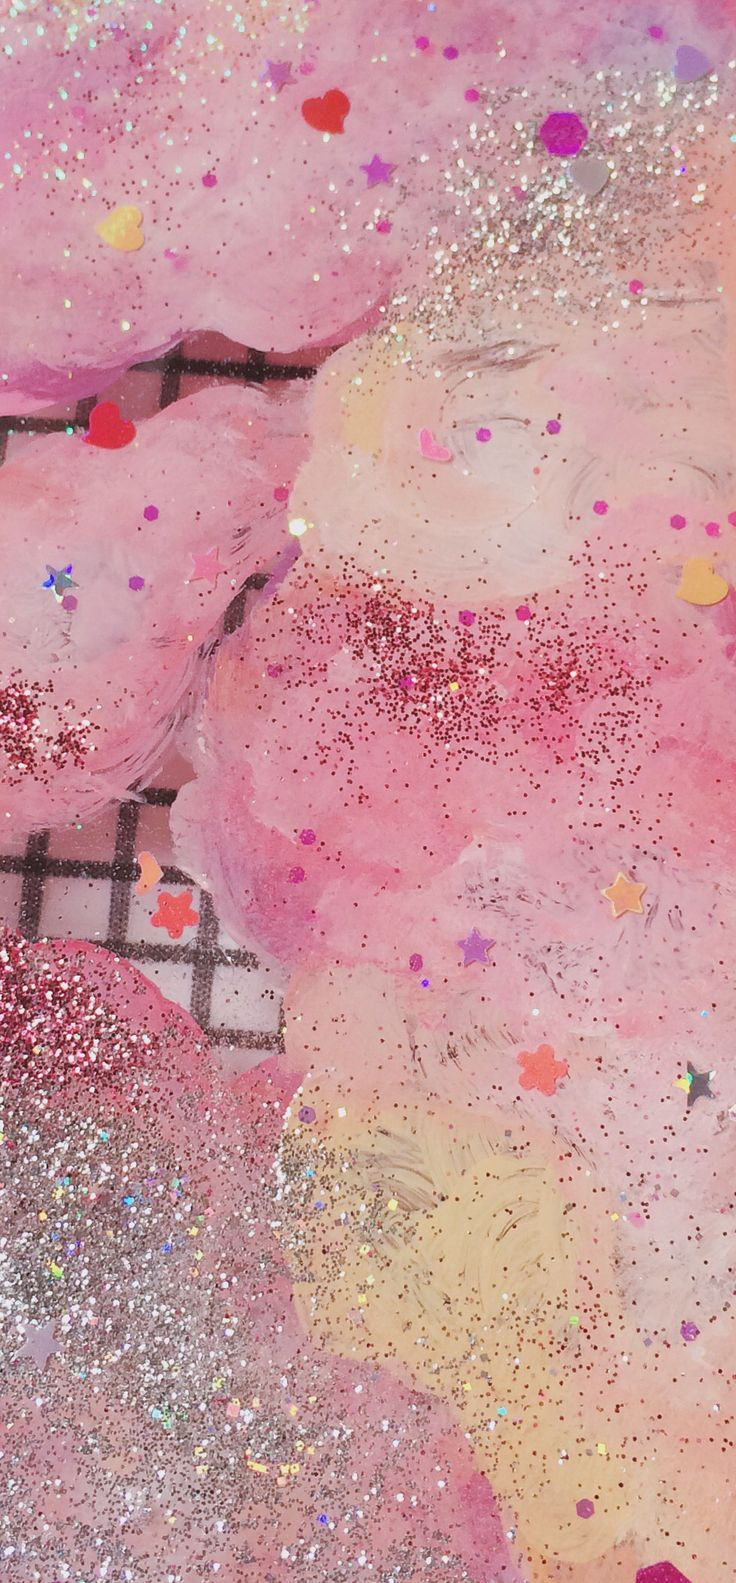 Pink Confetti and Glitter Texture | Candy Overlay | Pastel Stars & Hearts | Glittery | Sparkles | Feminine & Cute